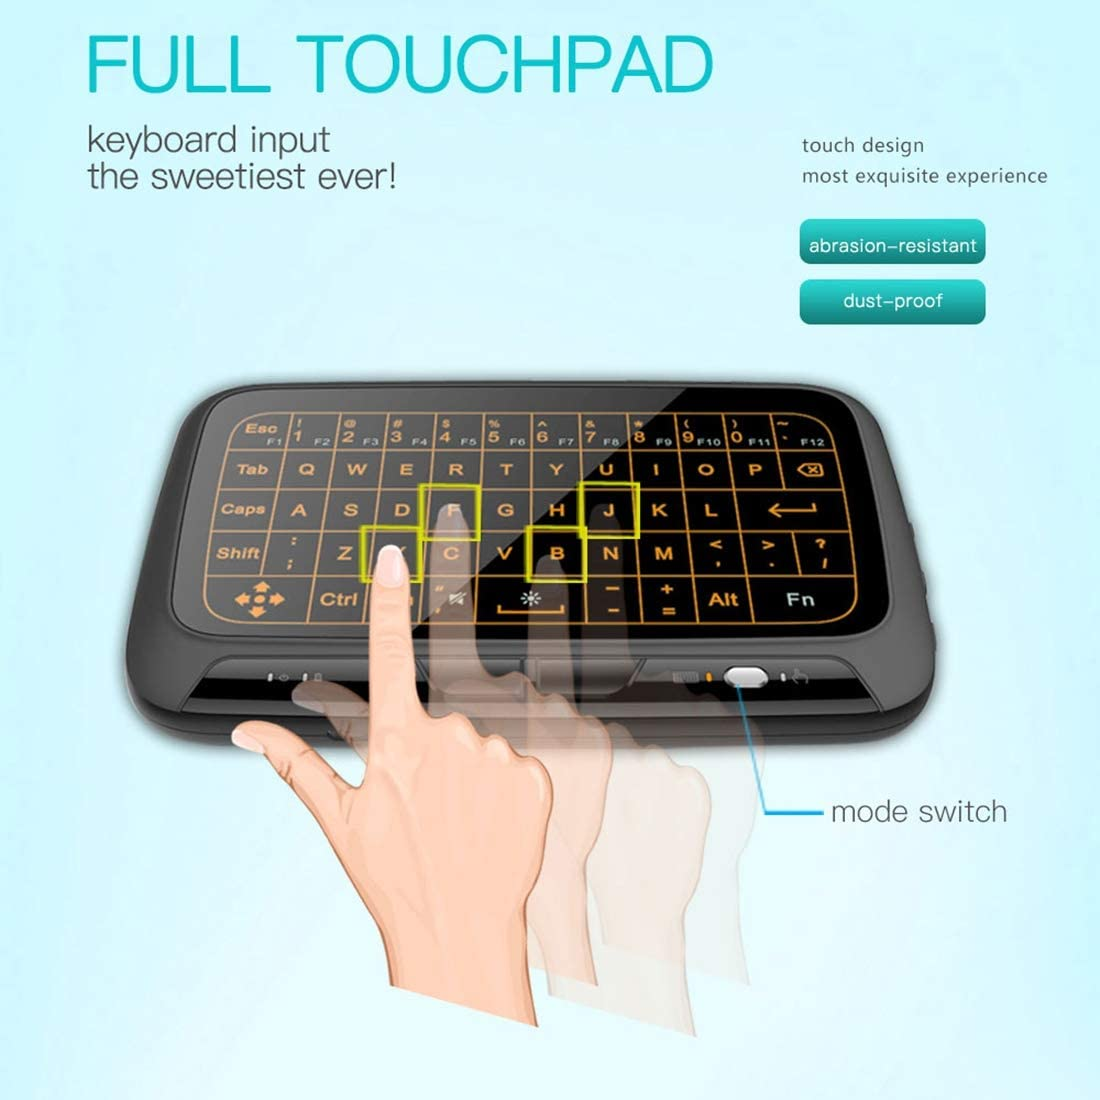 Black 2.4GHz Mini Wireless Keyboard Full Touchpad with 3-Level Adjustable Backlight JINYANG Mini Pc H18